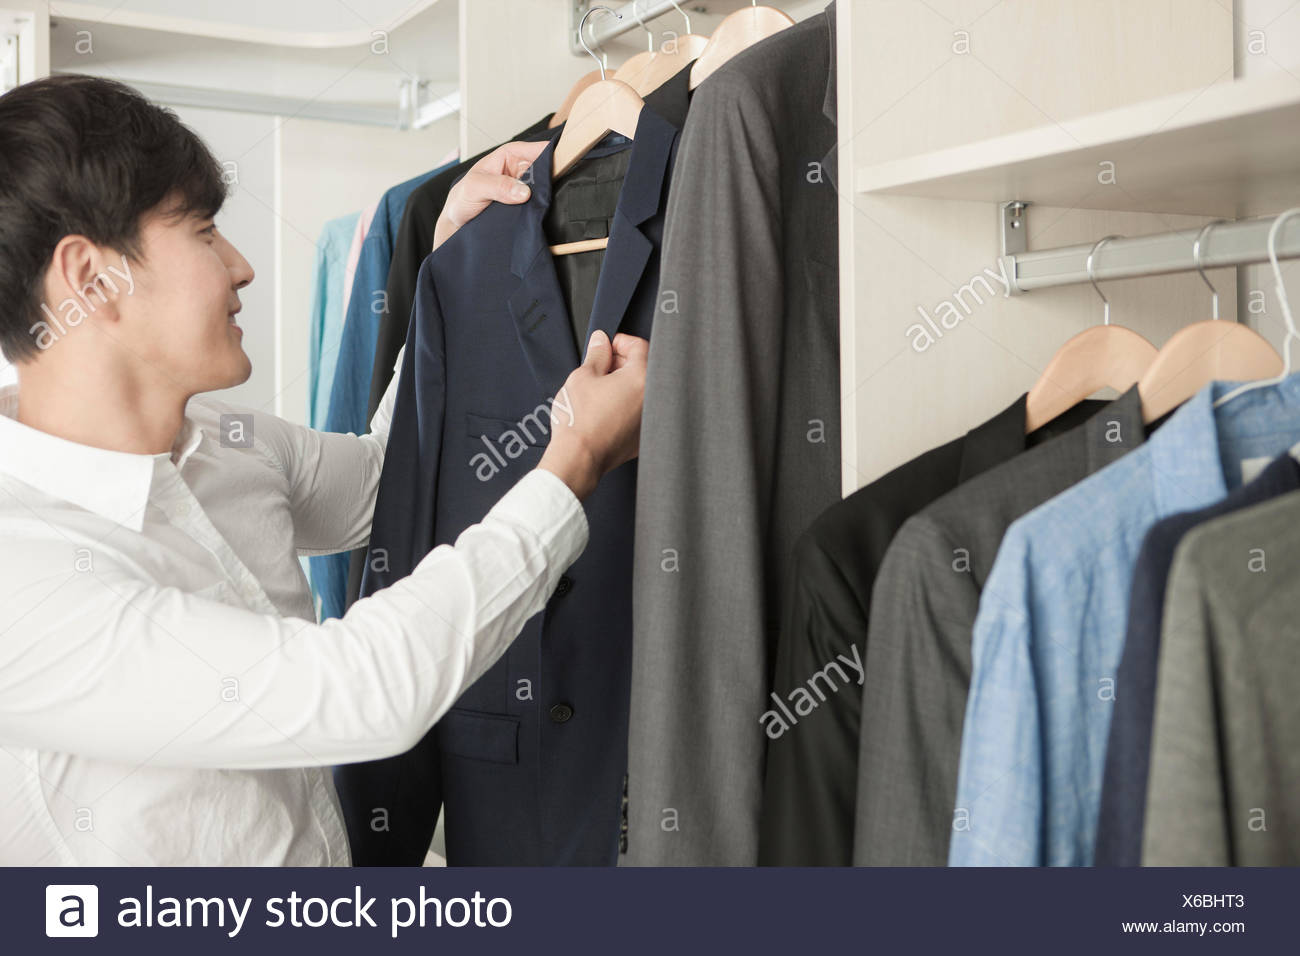 Man Holding A Jacket From The Closet And Looking At The Jacket   Stock Image